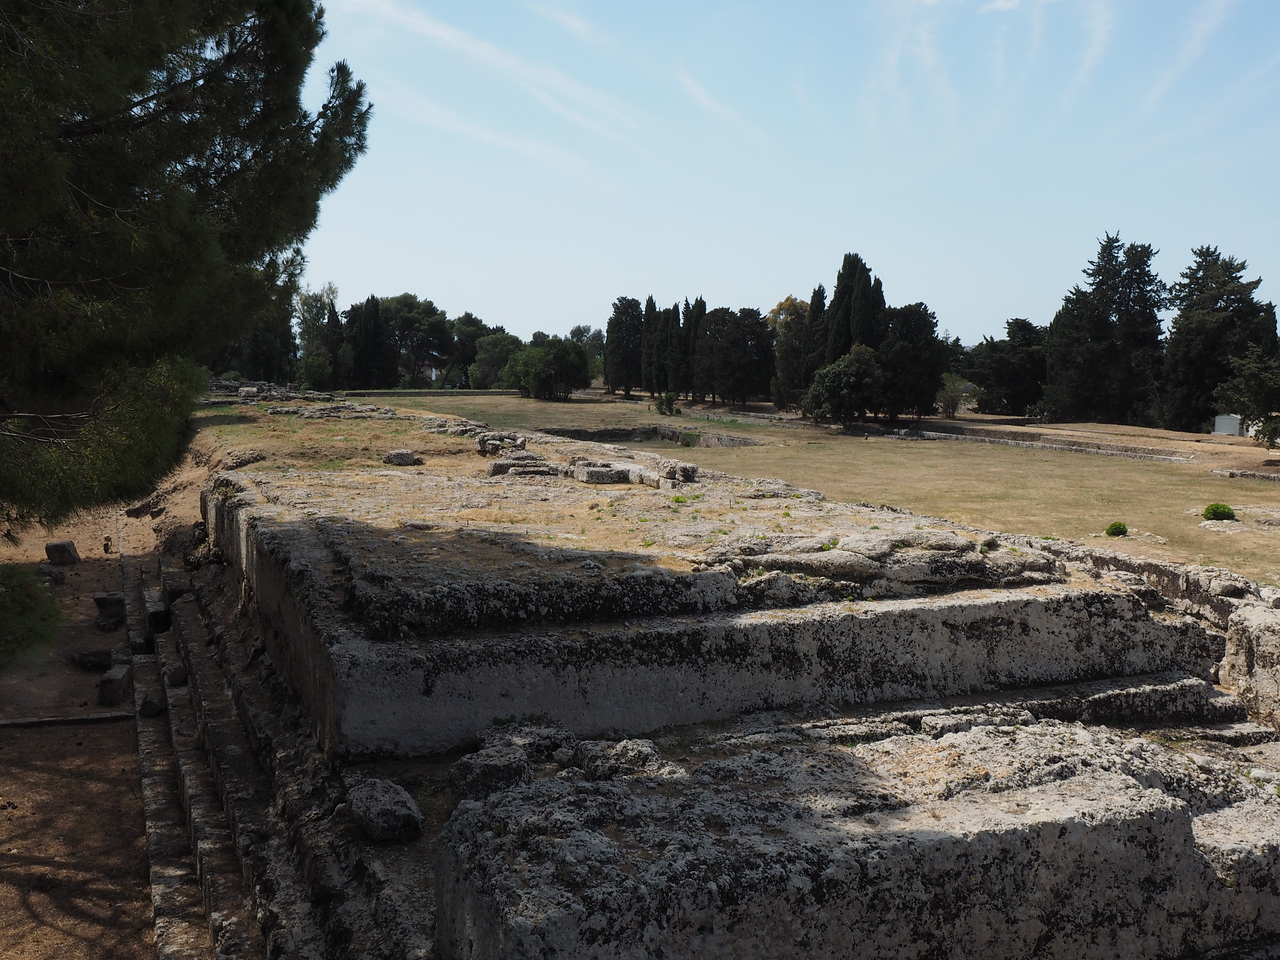 Siracusa, Sicily Altar of Hieron II where sacrifices were made before the perfomances  198 meters x 23 meters, largest altar known)